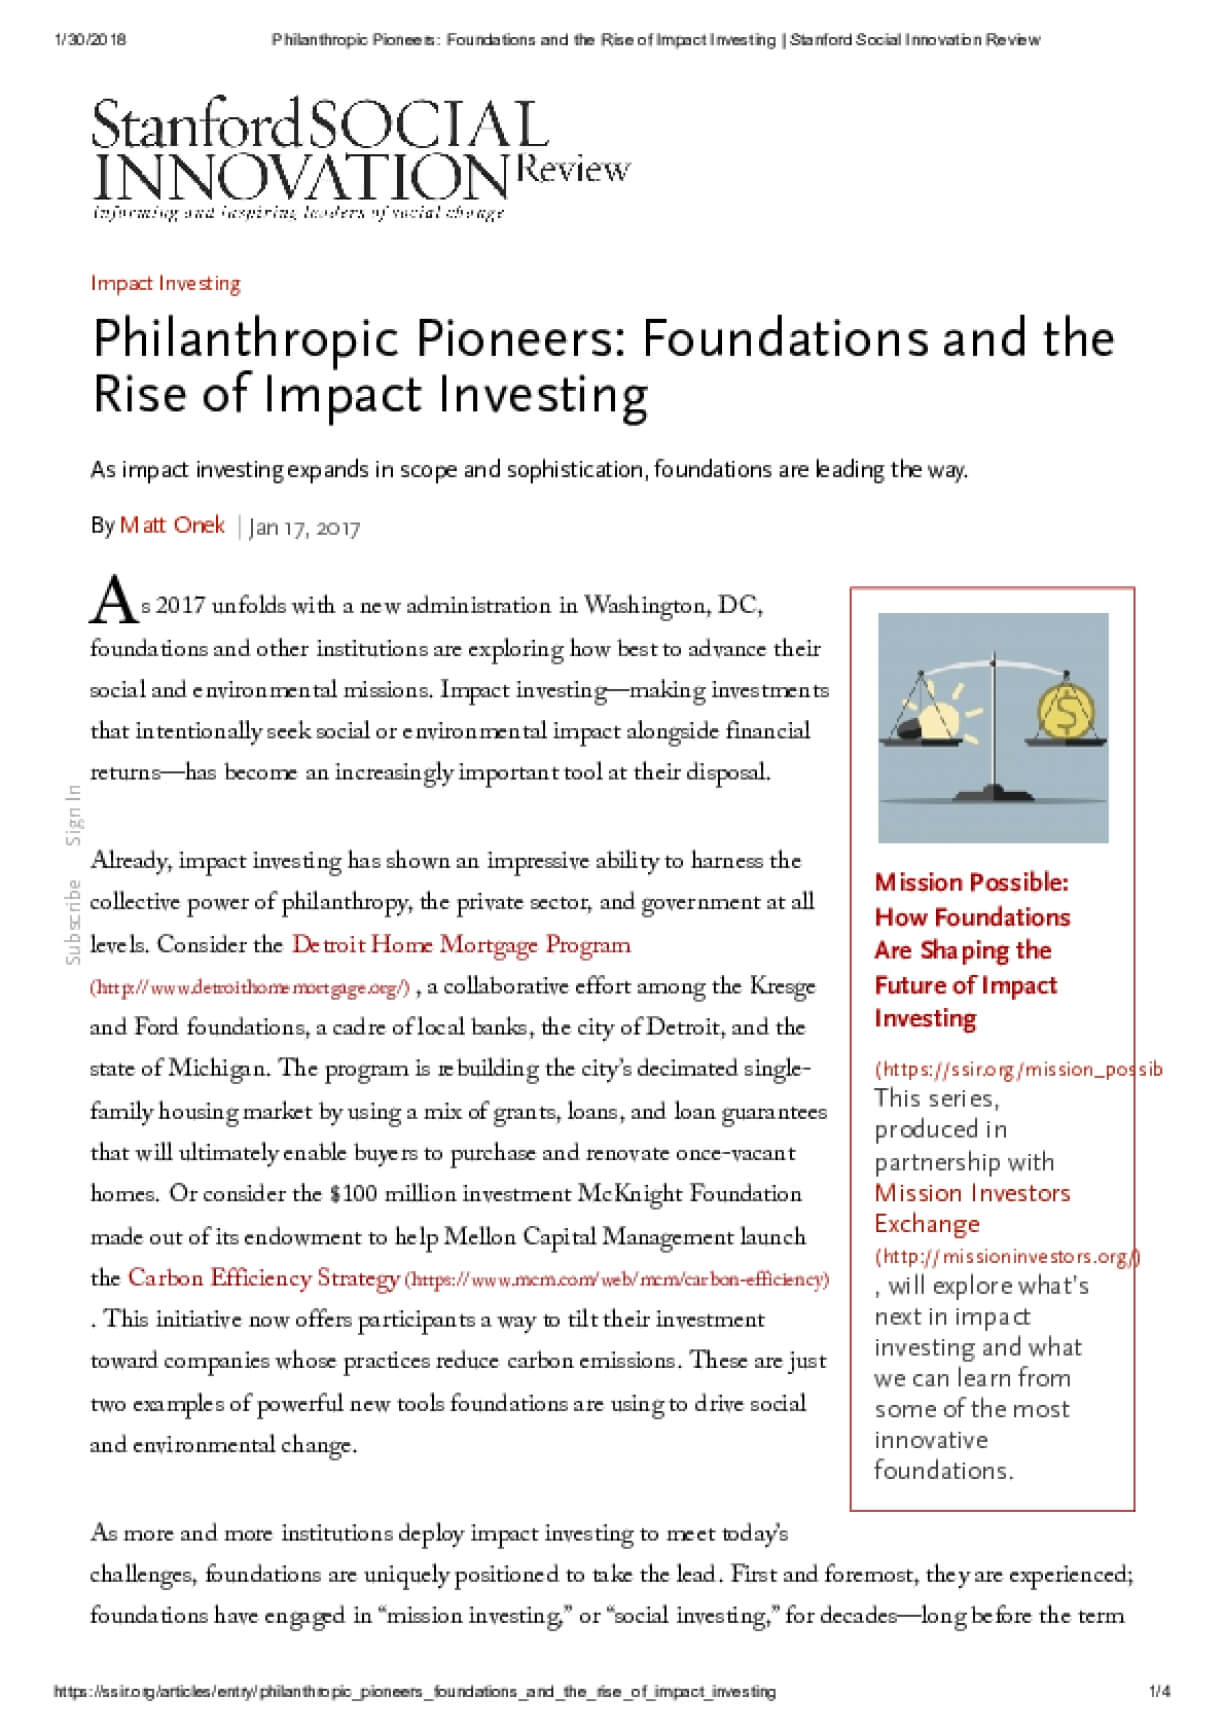 Philanthropic Pioneers: Foundations and the Rise of Impact Investing